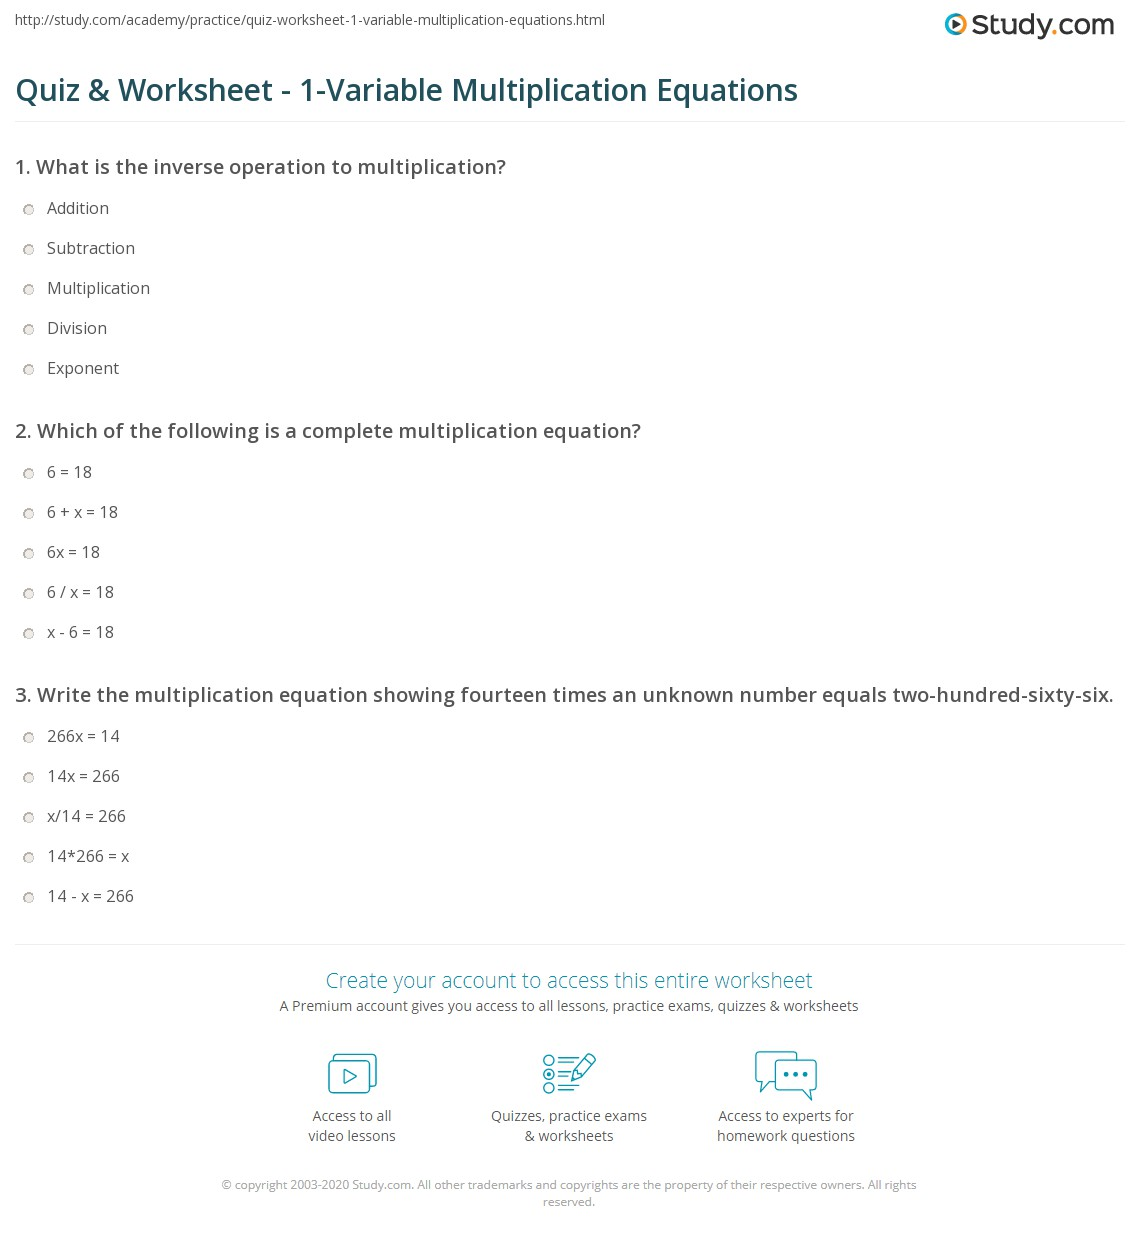 Quiz & Worksheet - 1-Variable Multiplication Equations | Study.com